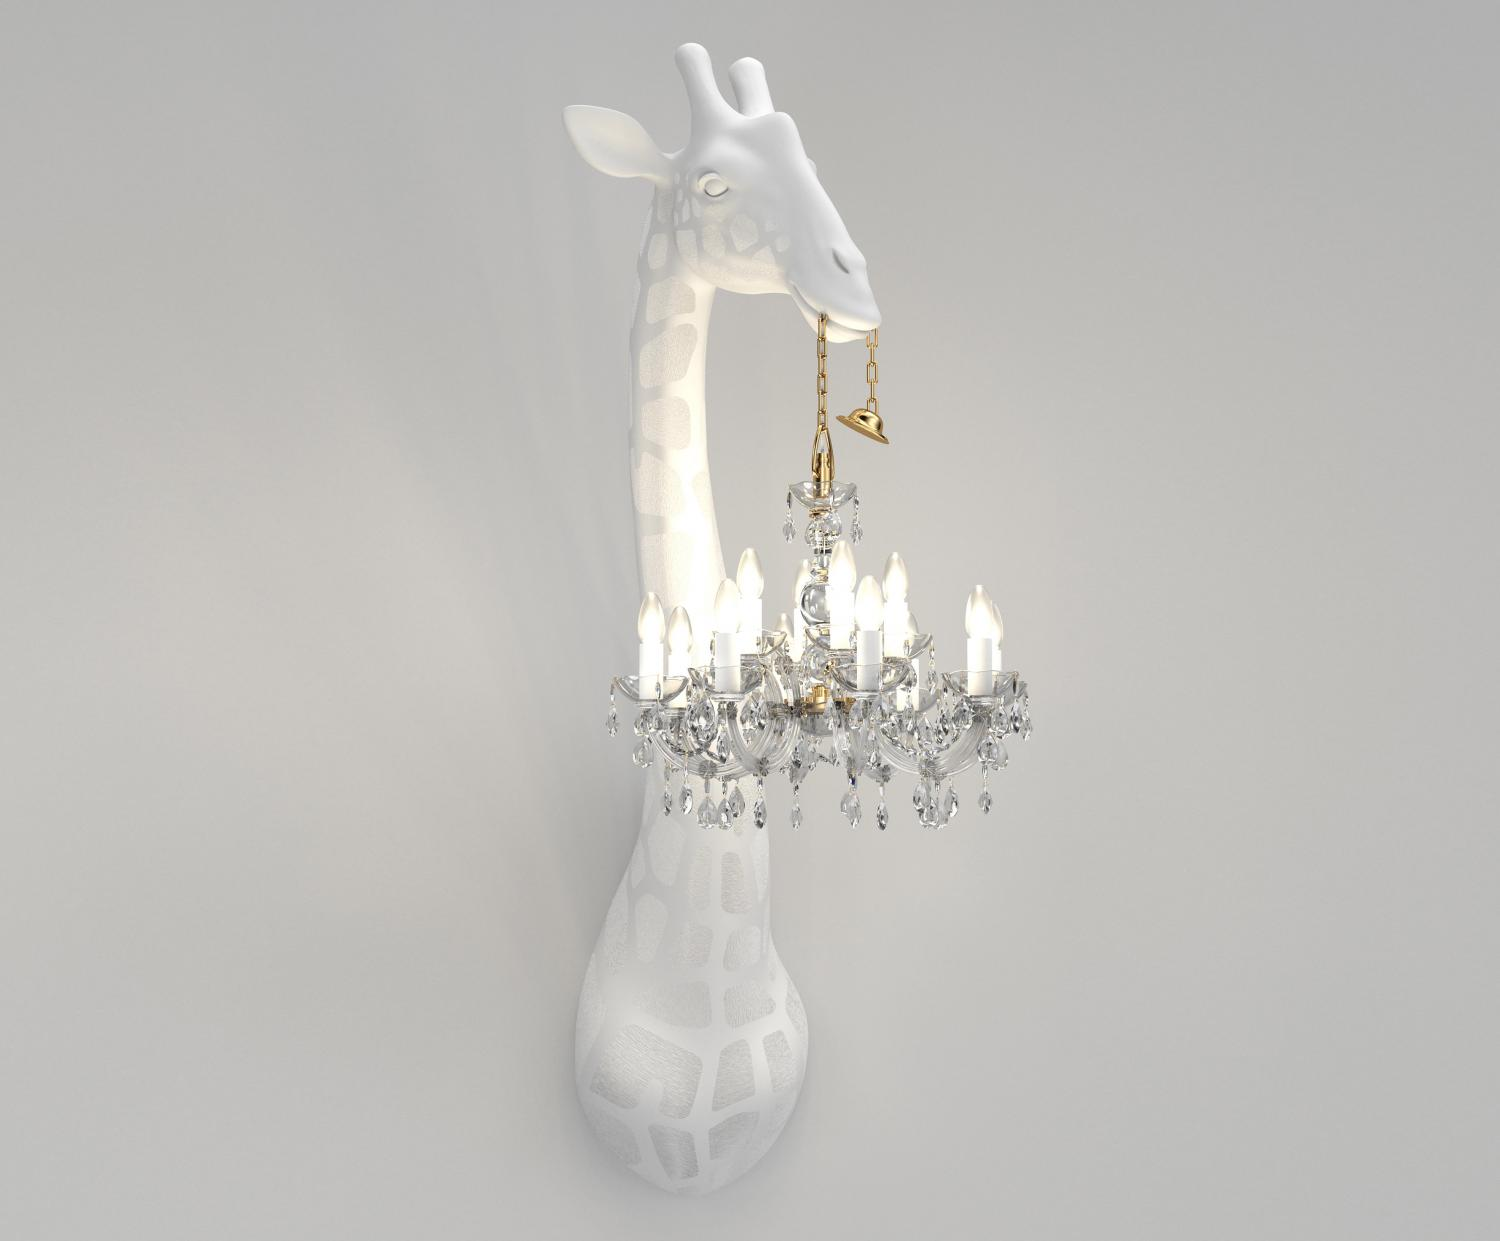 Giant Giraffe Chandelier - Wall mounted giraffe lamp